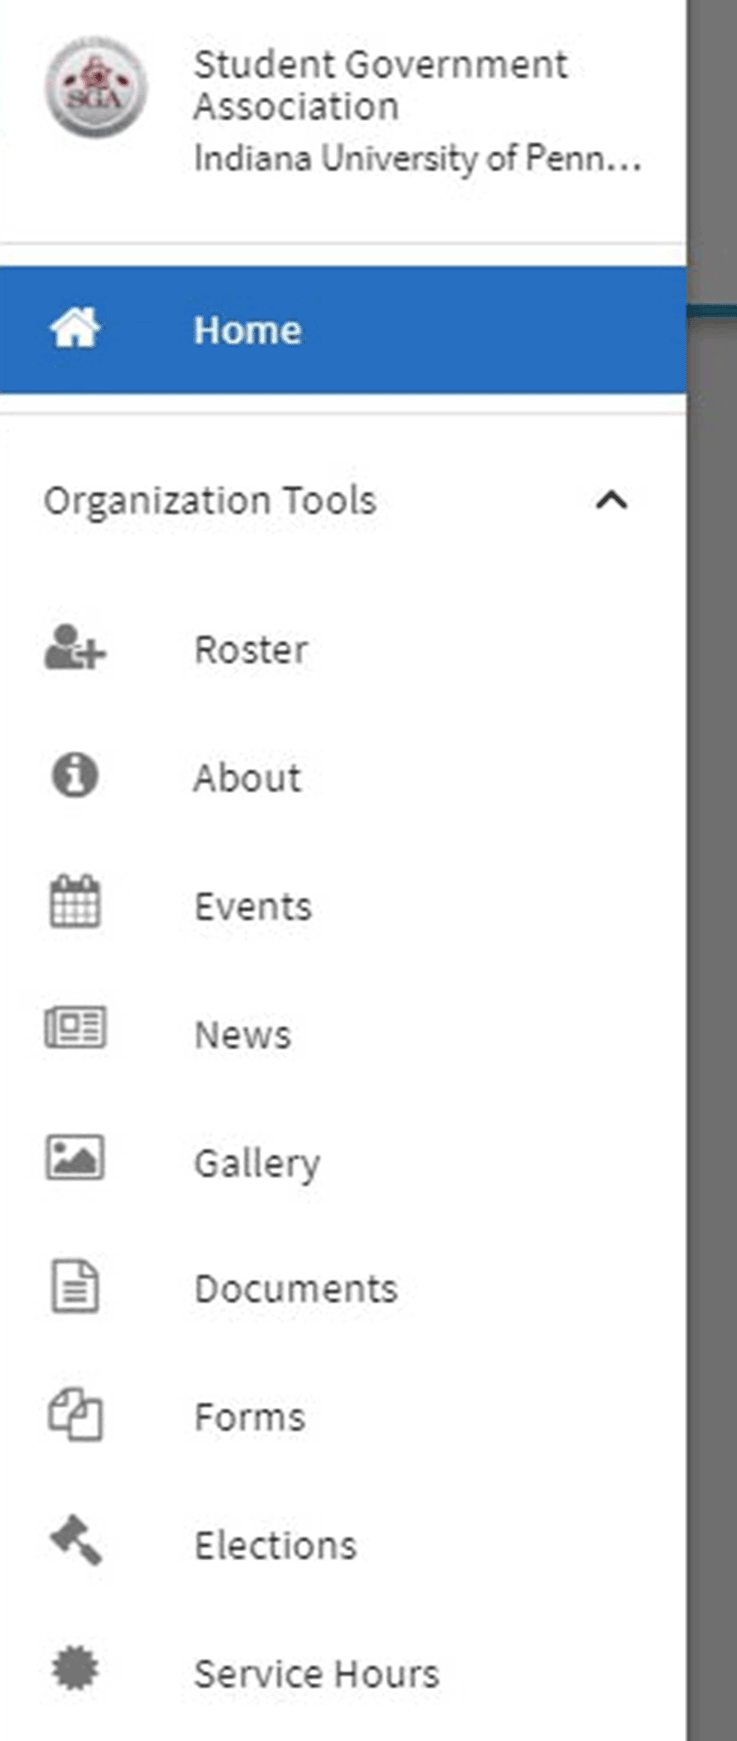 Menu showing organization tools